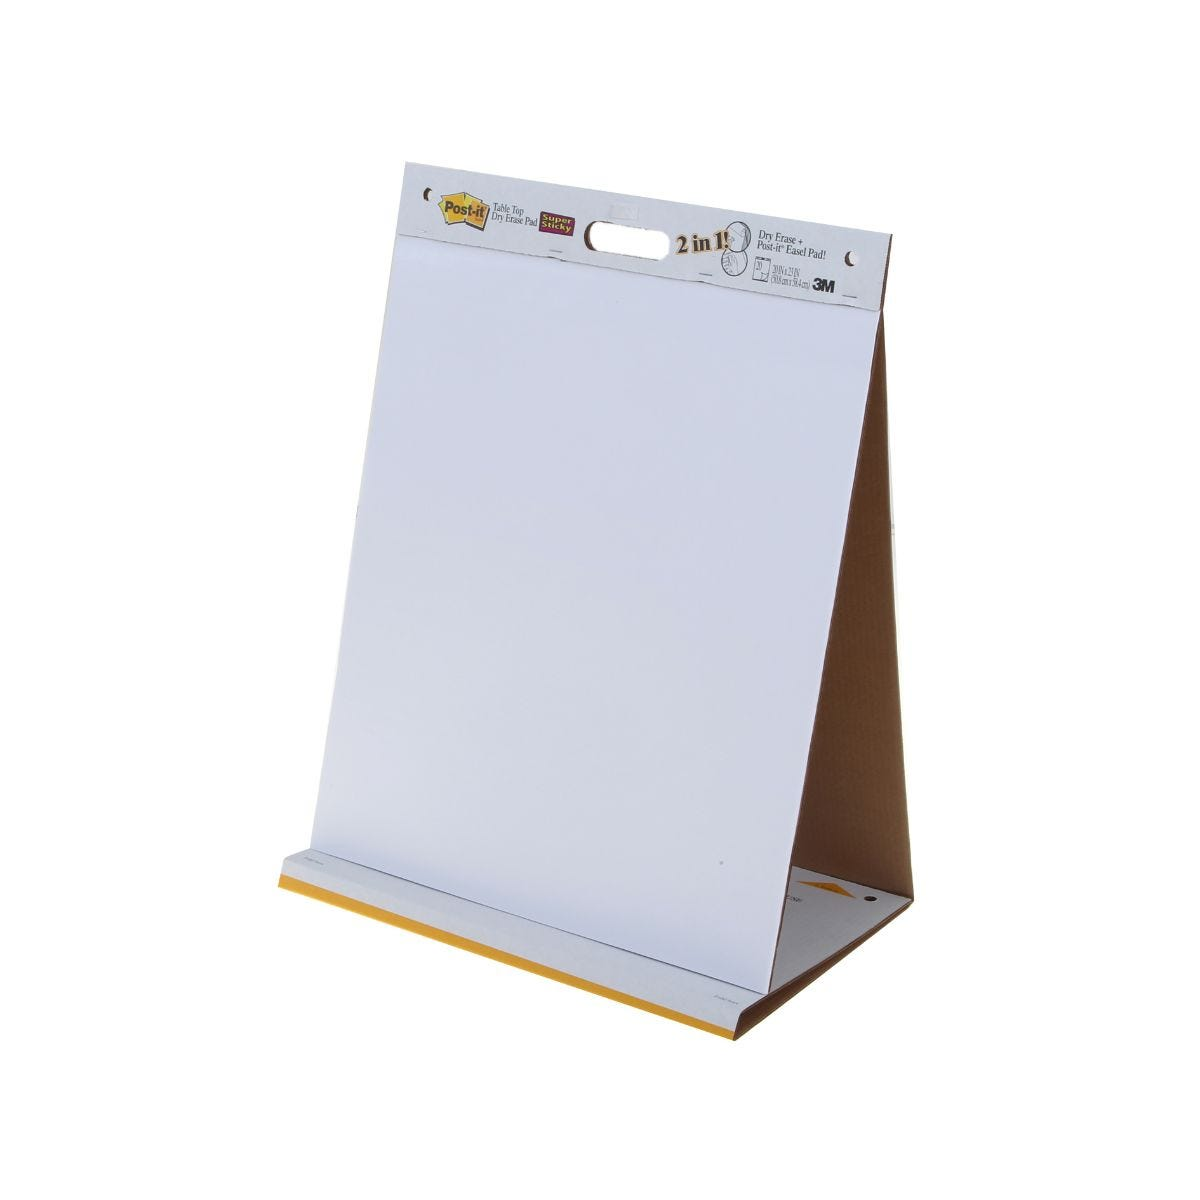 Image of 3M Post-it Tabletop Dual Easel 20 Sheets